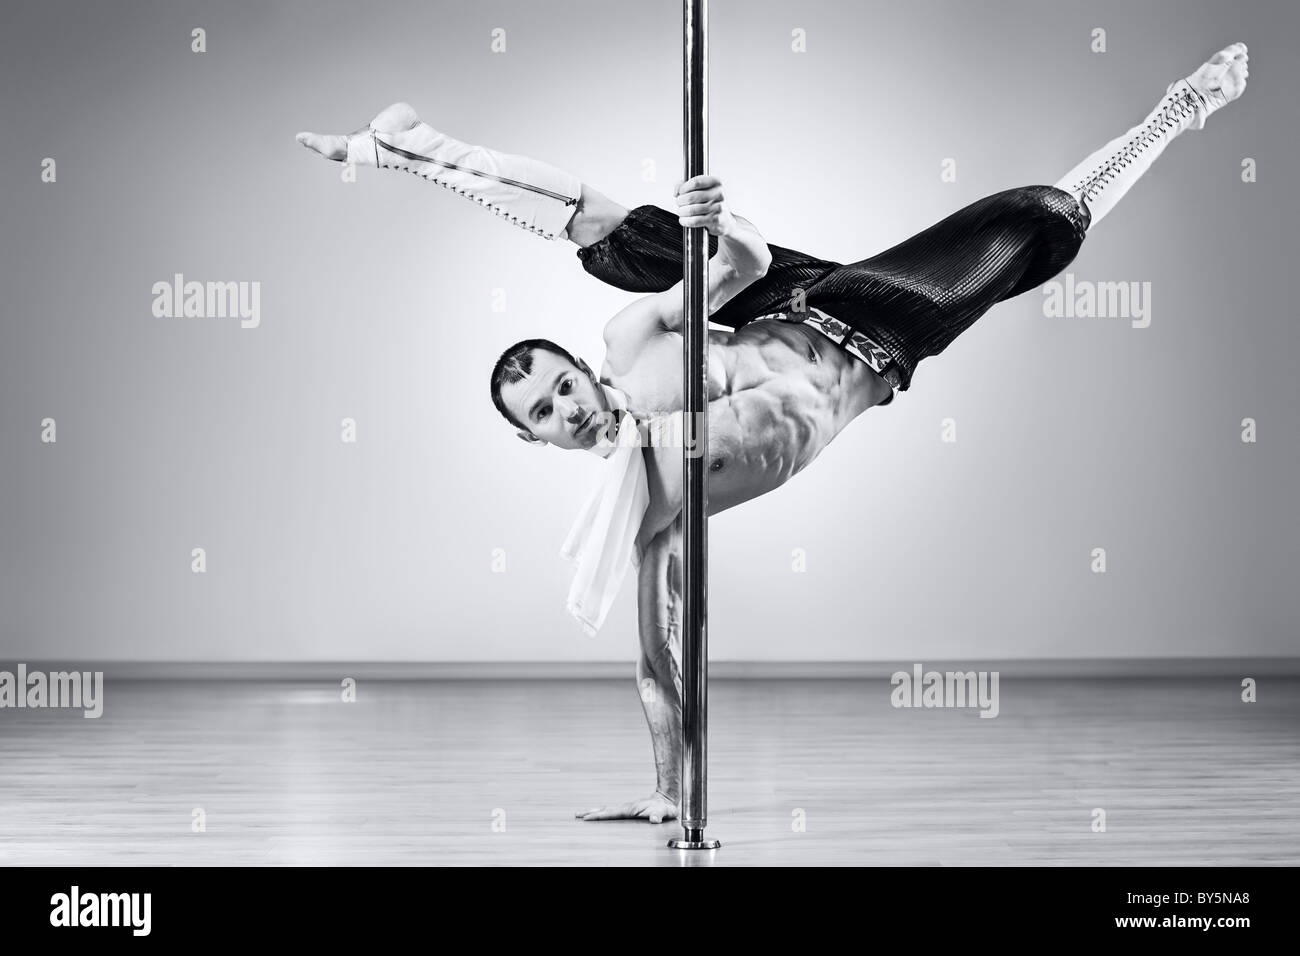 Young strong pole dance man. Black and white colors. - Stock Image